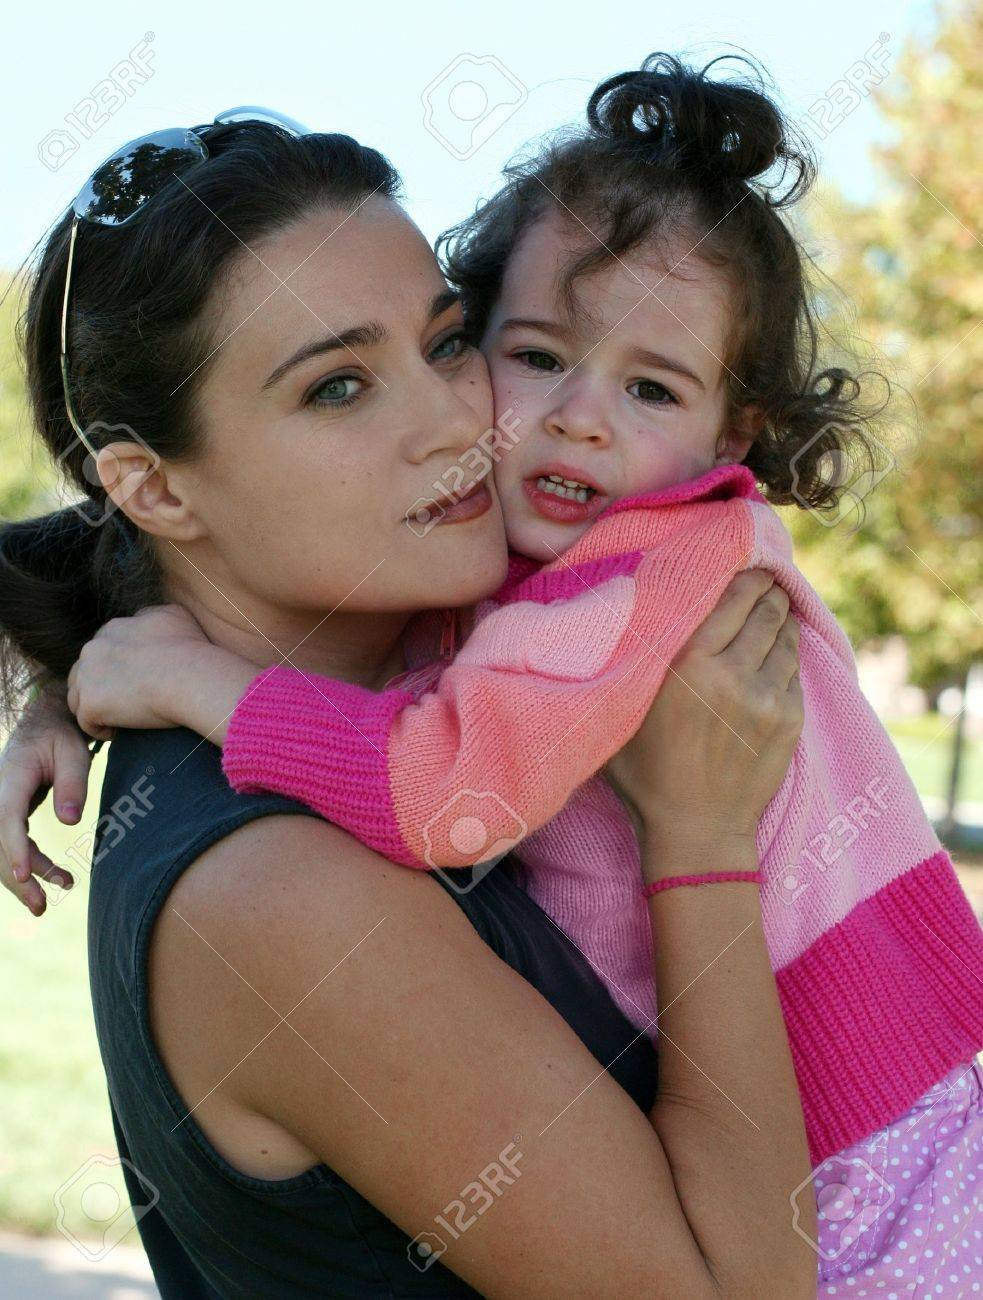 An outdoor portrait of a mother and her crying daughter Stock Photo - 4611052